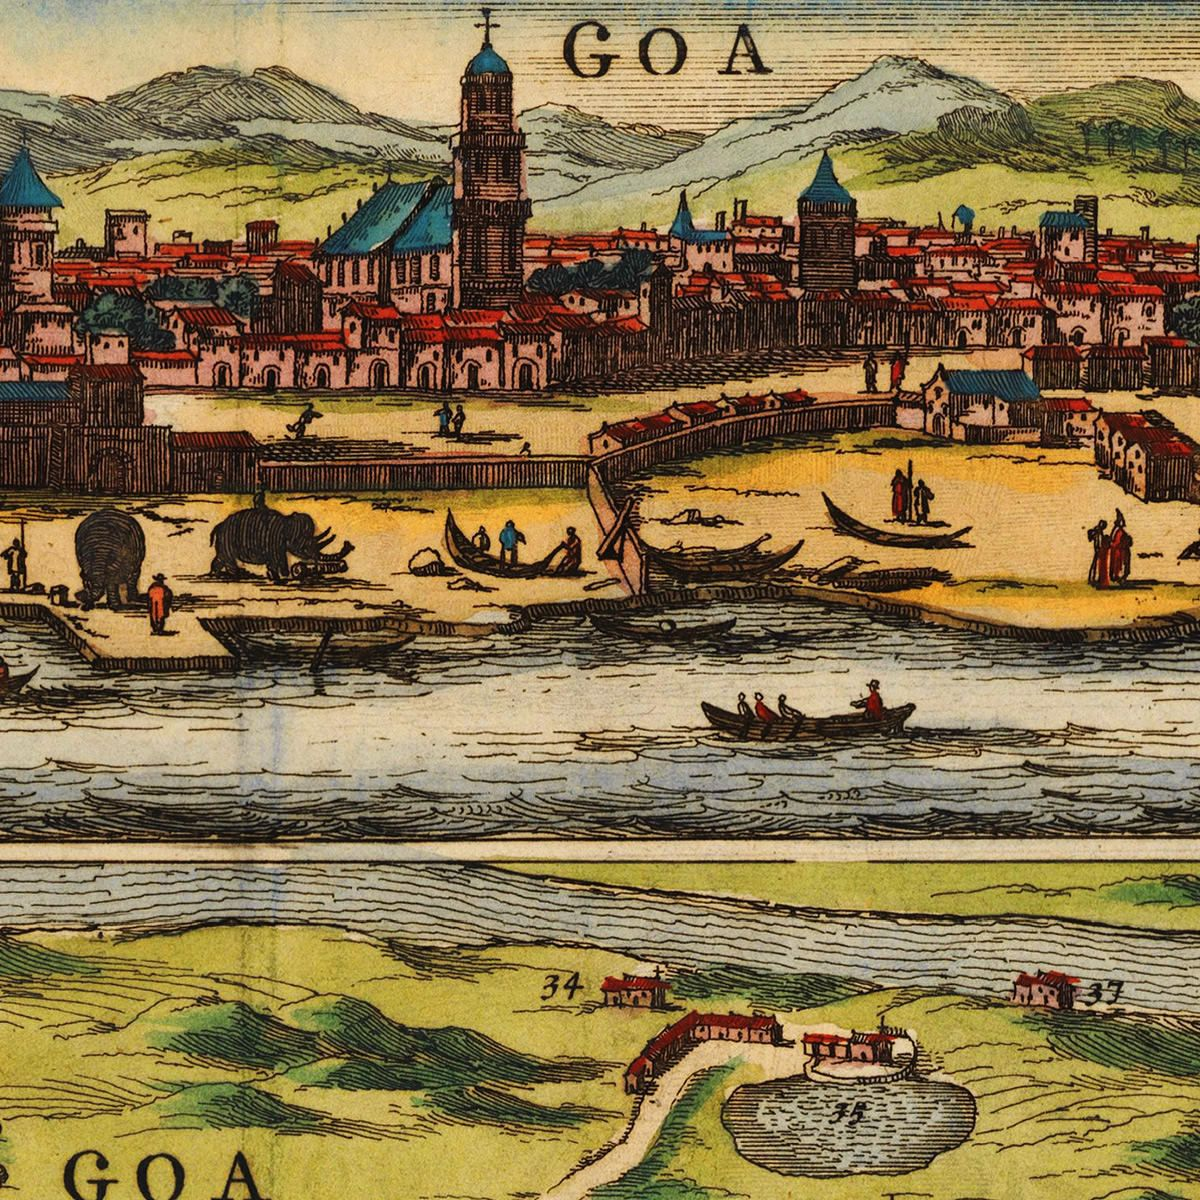 Goa India Baldaeus Plan View Old Map Battlemapsus - Map of us bioregions ancient food traditions